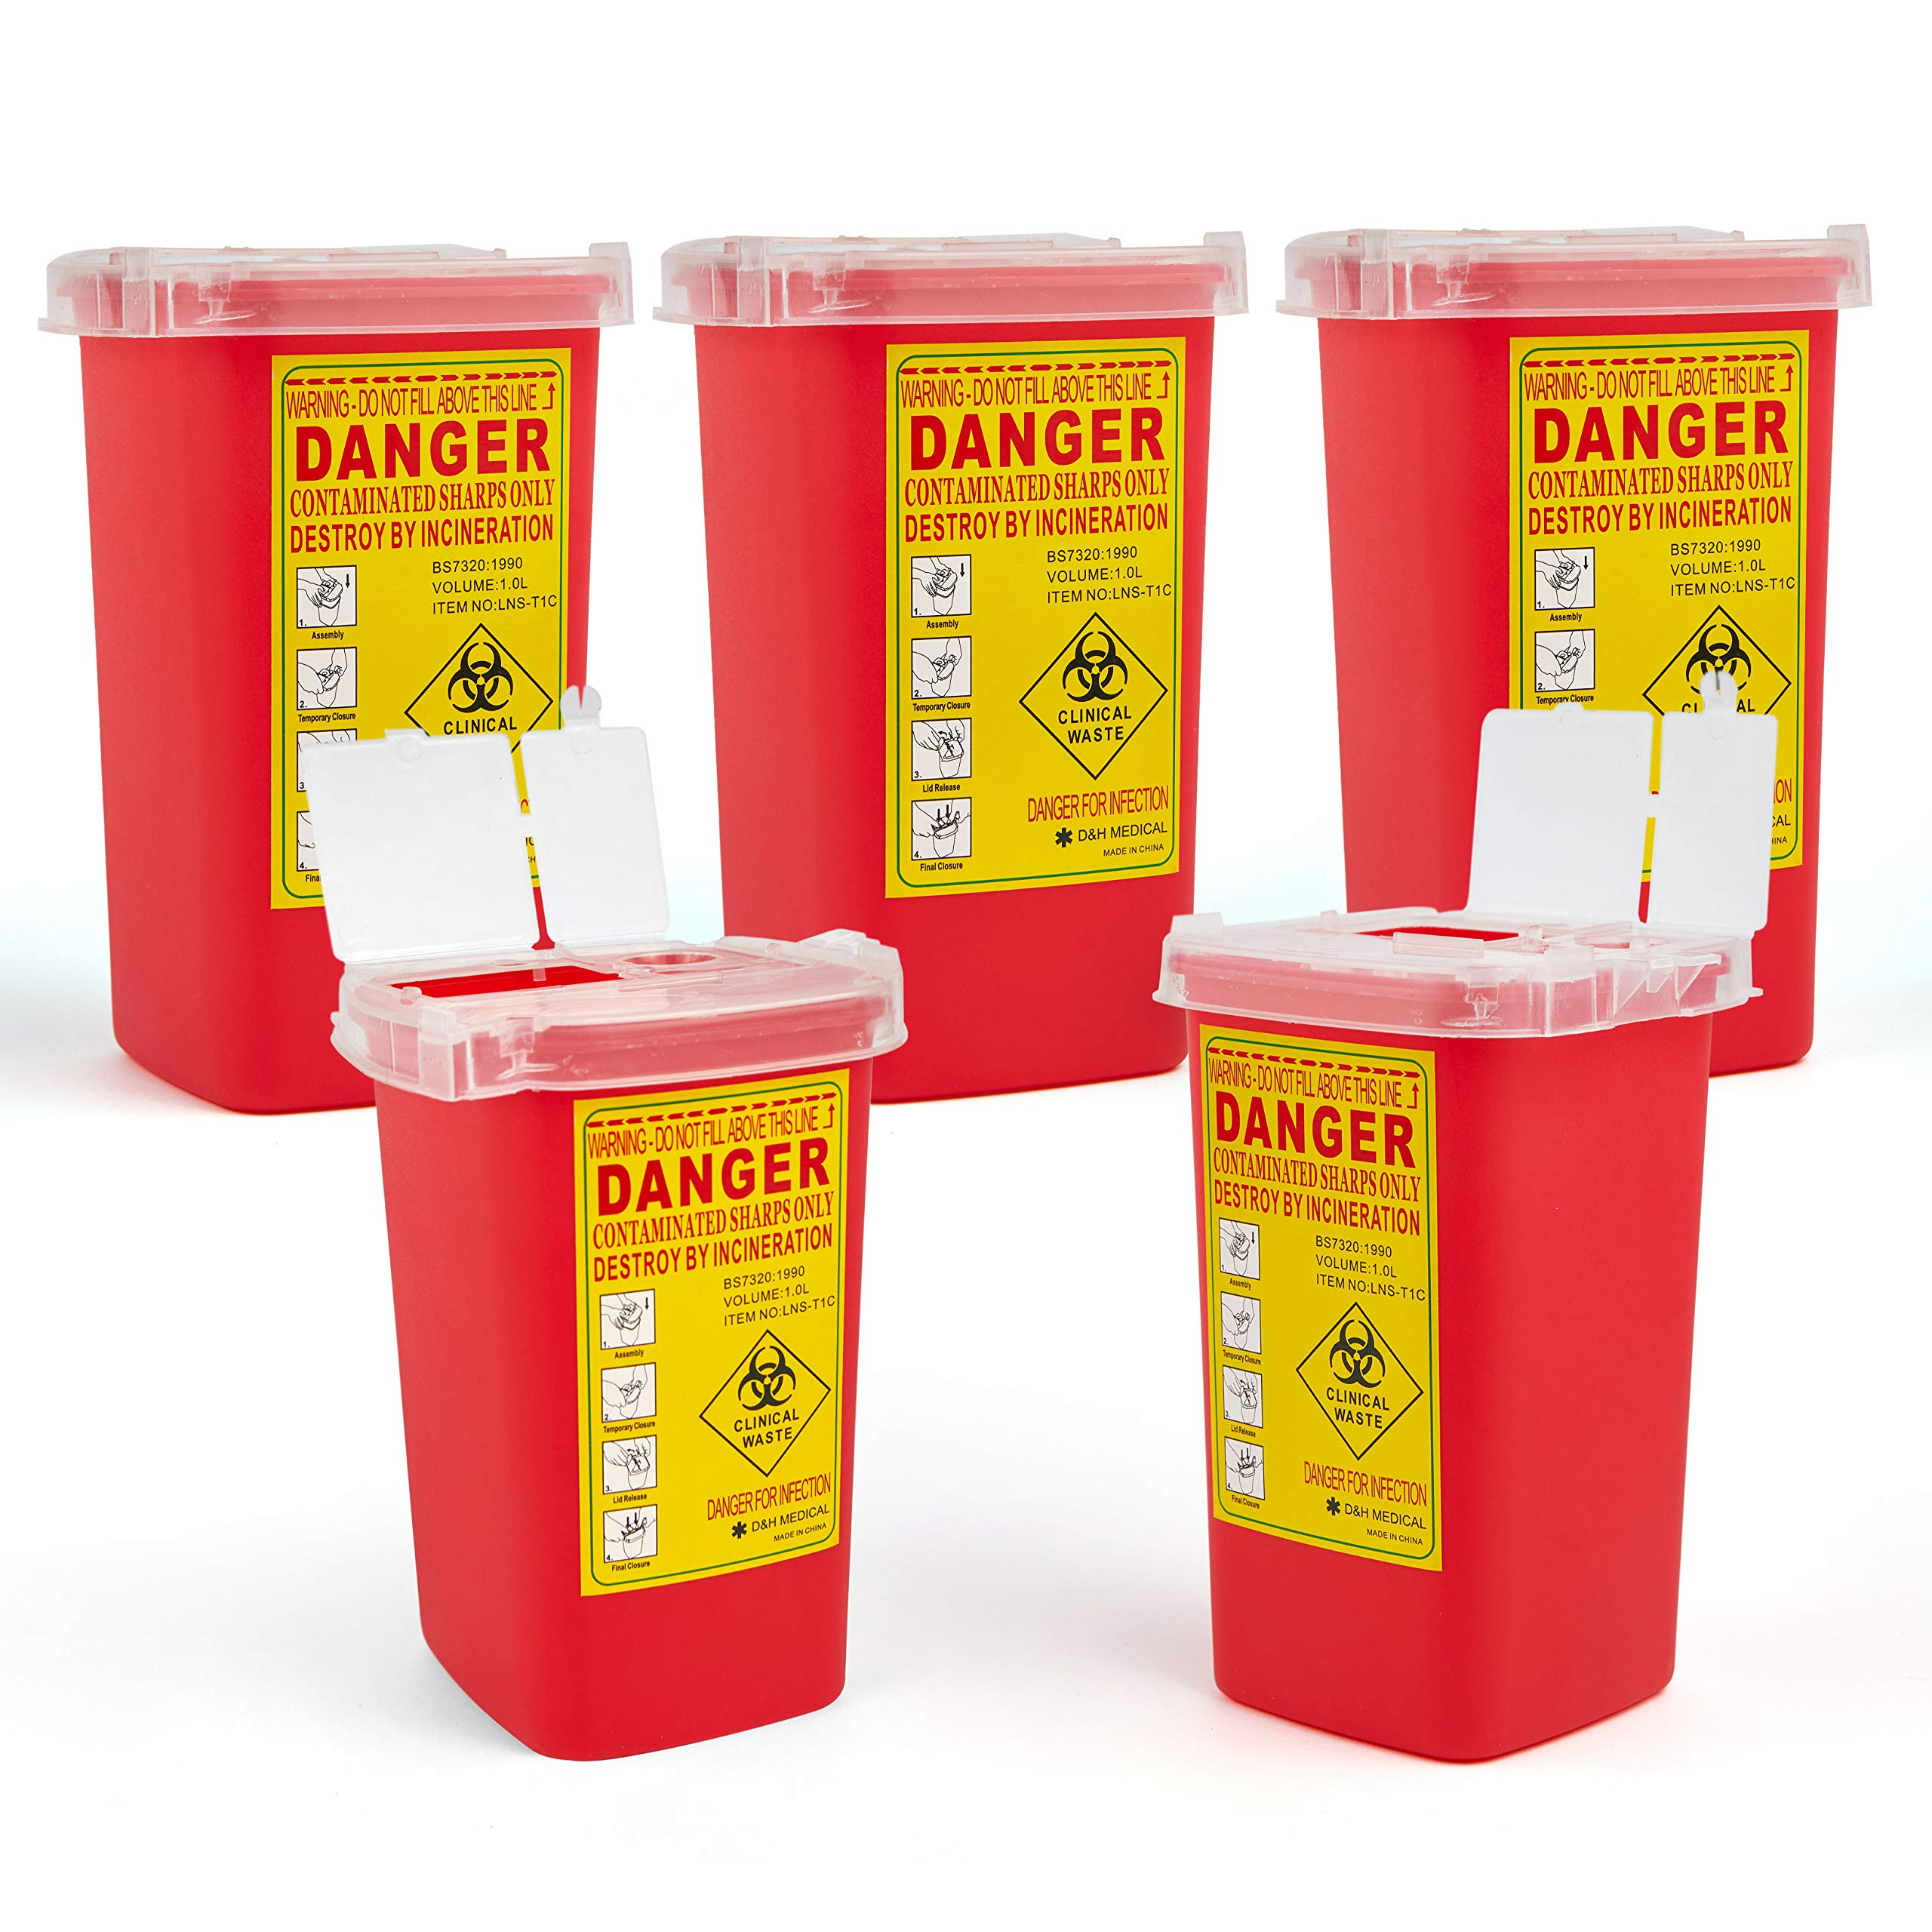 D & H Medical Sharps Disposal Container: 5-Pack Biohazard Needle Container 1-Quart Size| FDA-Approved, Safe Lock Containers for Disposal of Syringes, Blades & Lancets| Top Tattoo Supplies Disposal Kit by D&H Medical